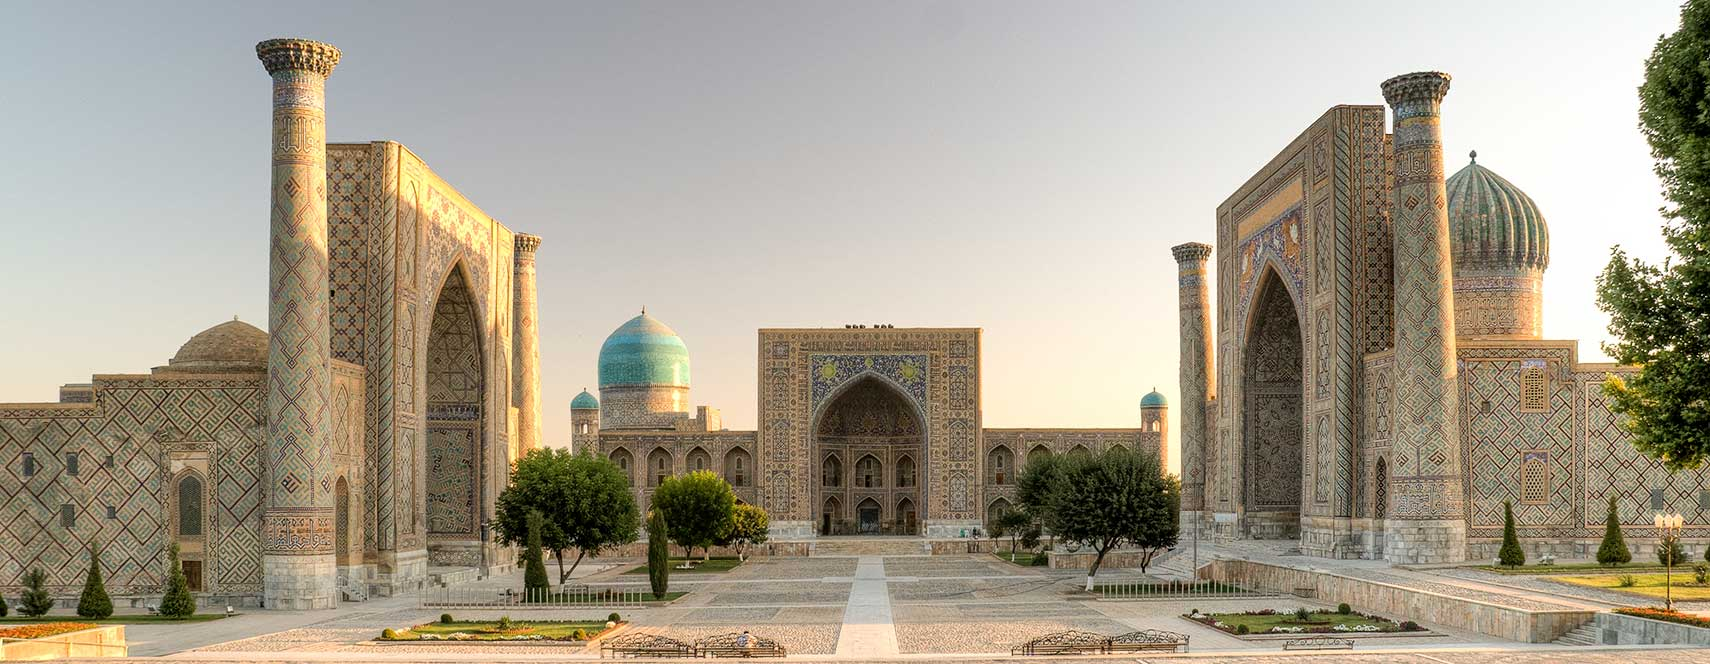 Registan with its three madrasahs in Samarkand